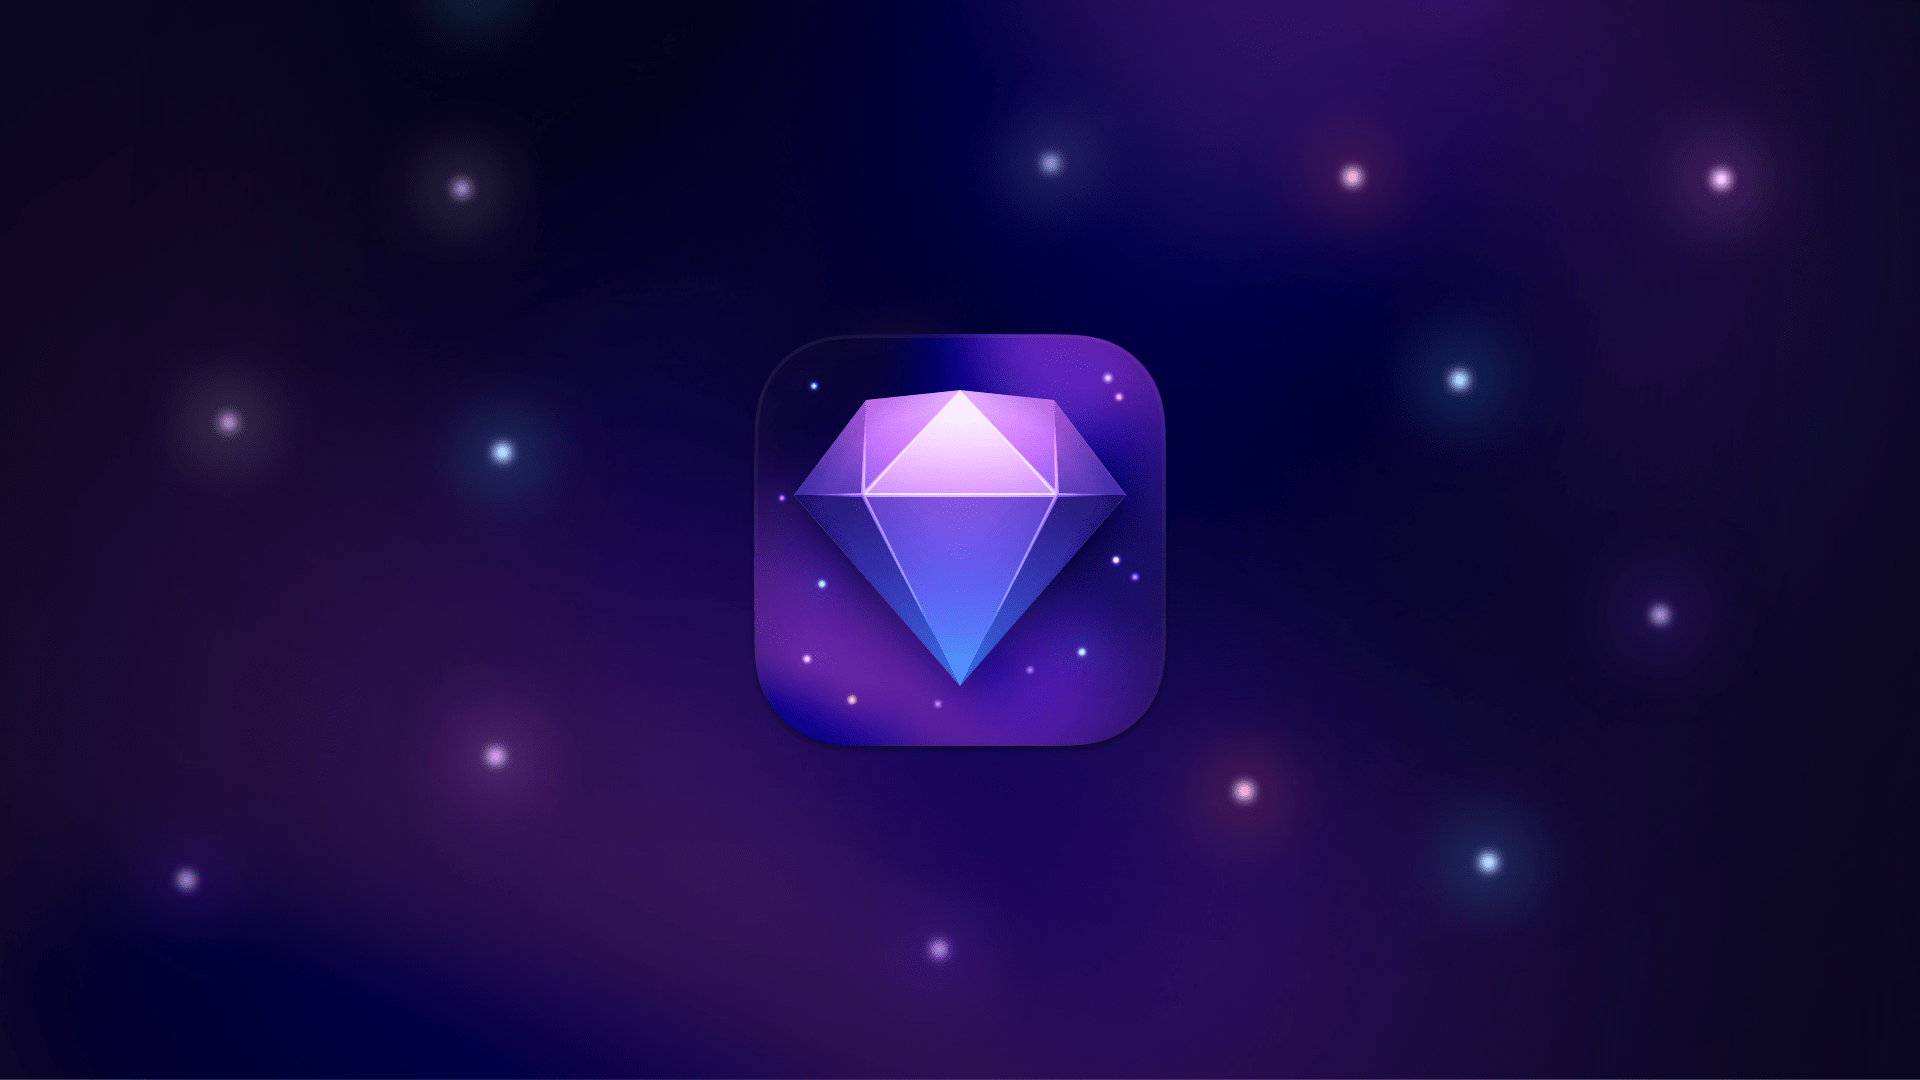 The new icon for our internal 'Experimental' release, featuring a purple diamond on a space background.